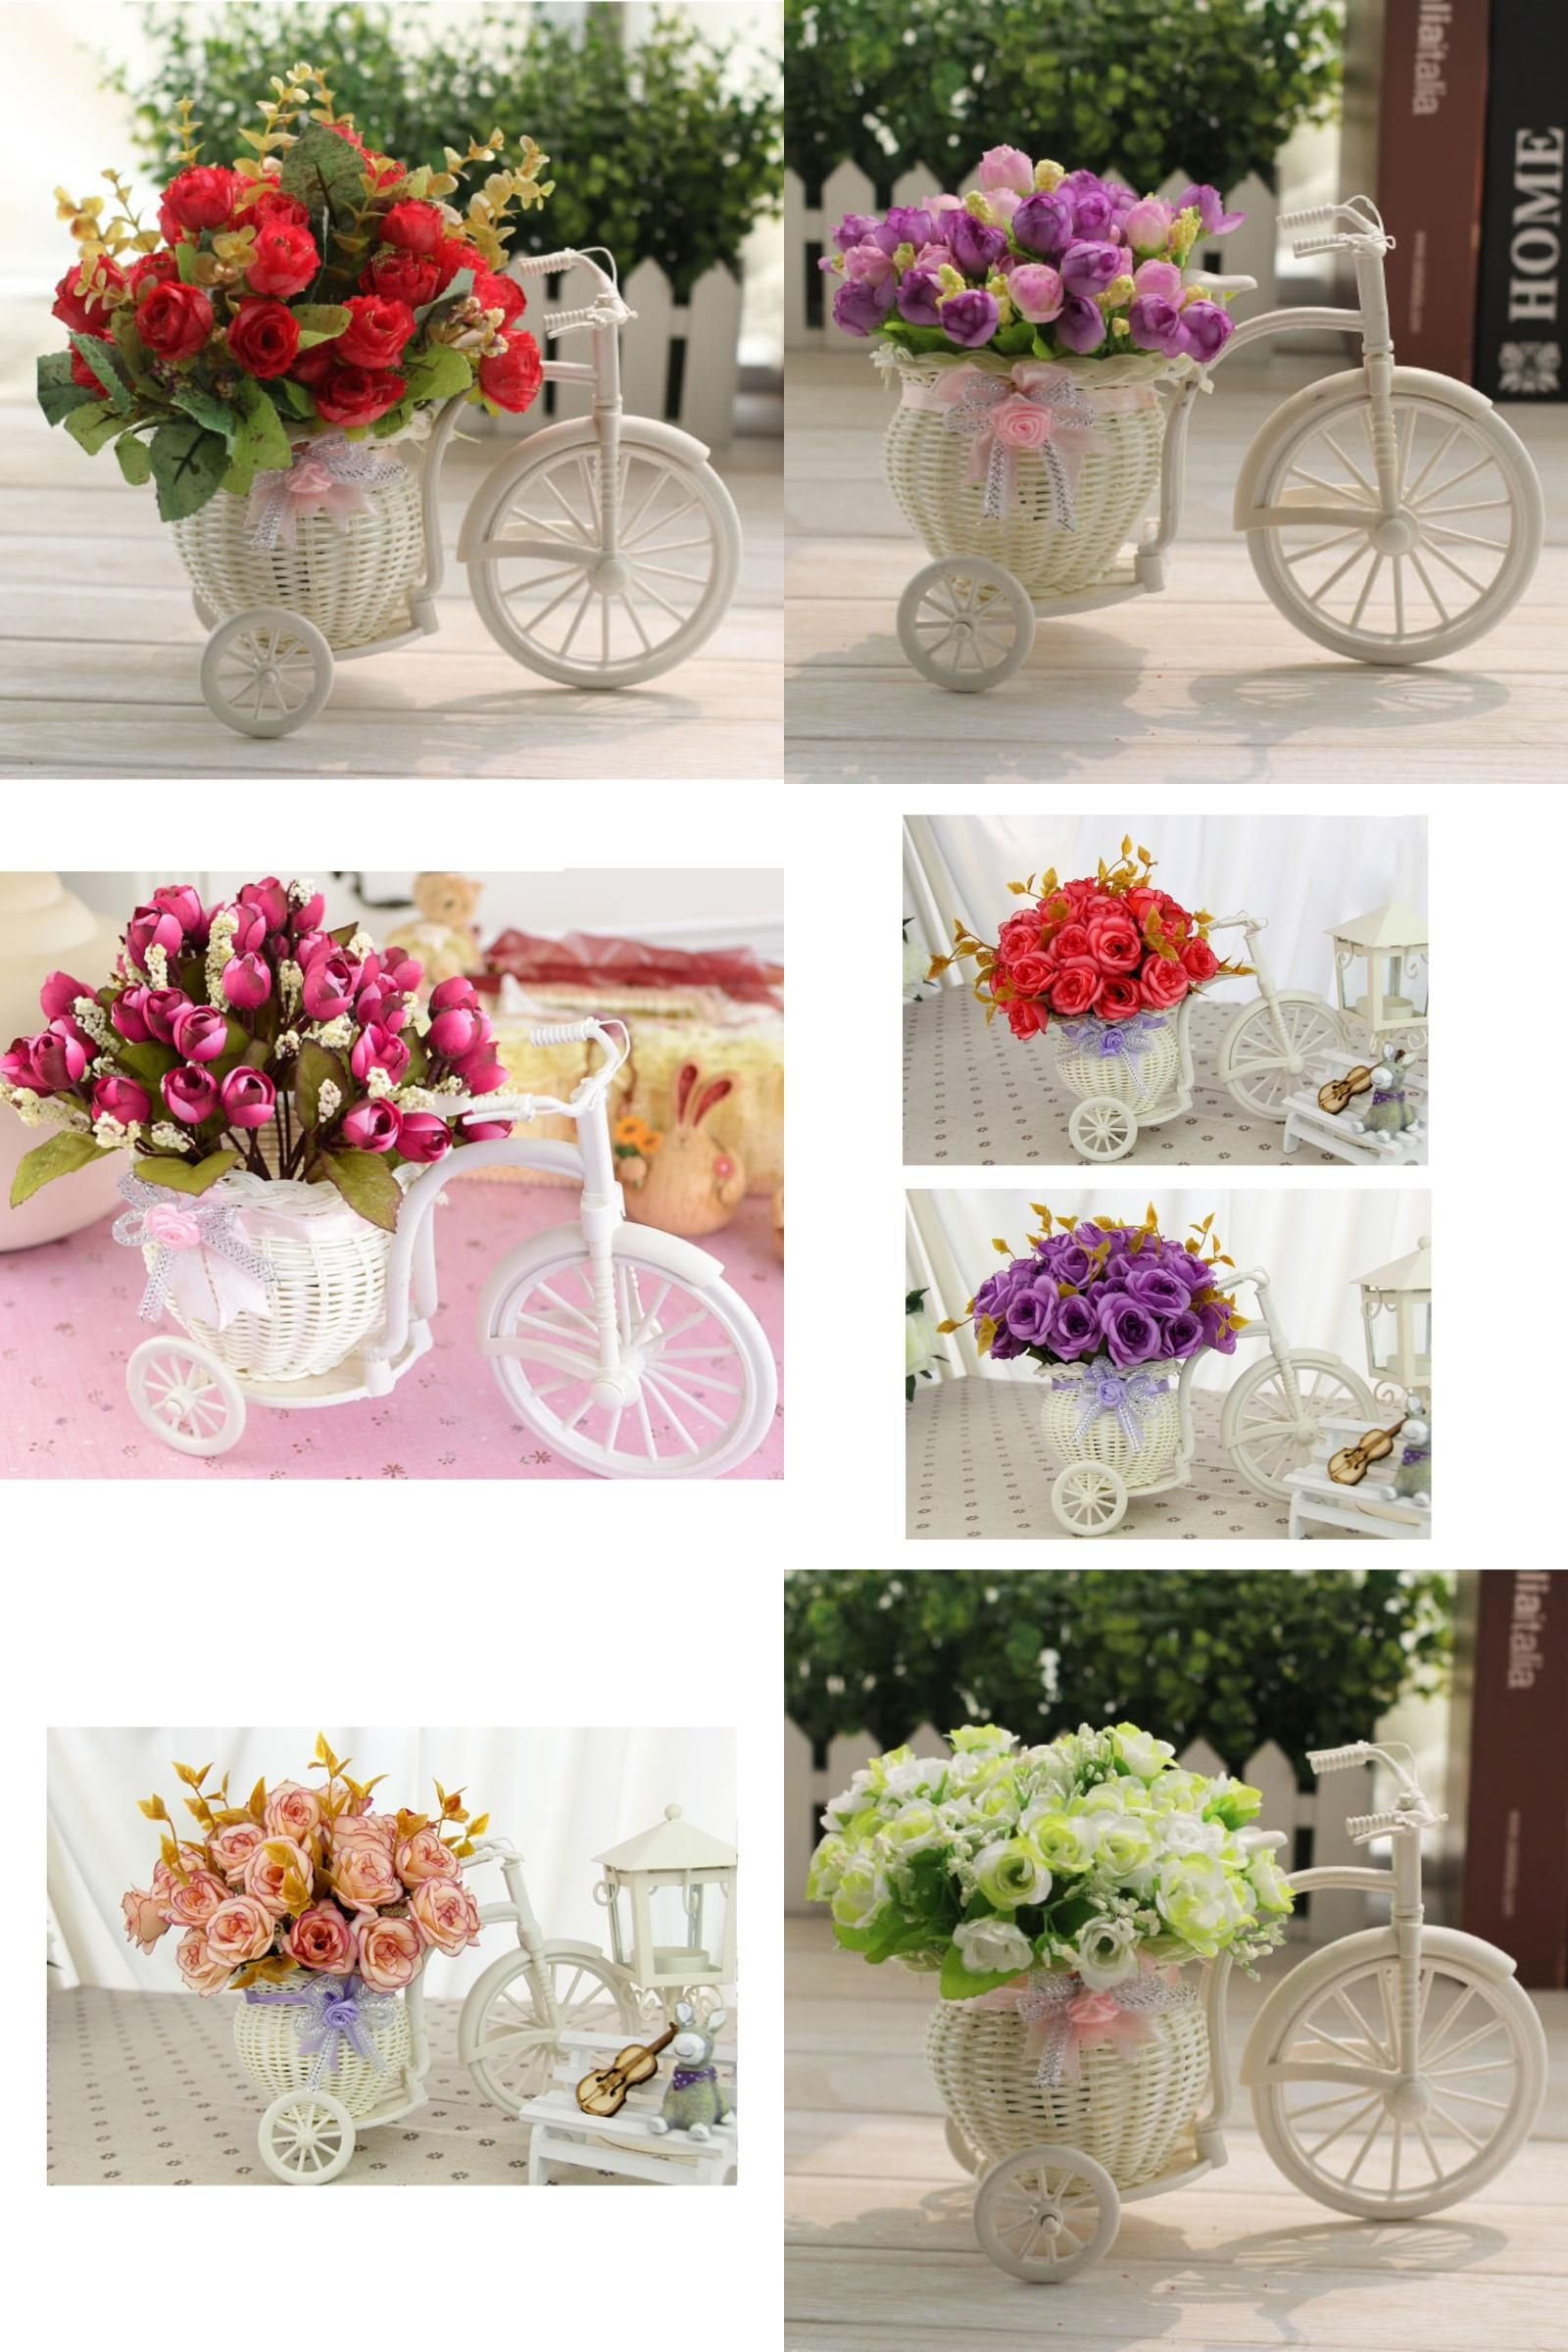 Wedding decorations white  Visit to Buy DIY Plastic White Tricycle Bike Design Flower Basket